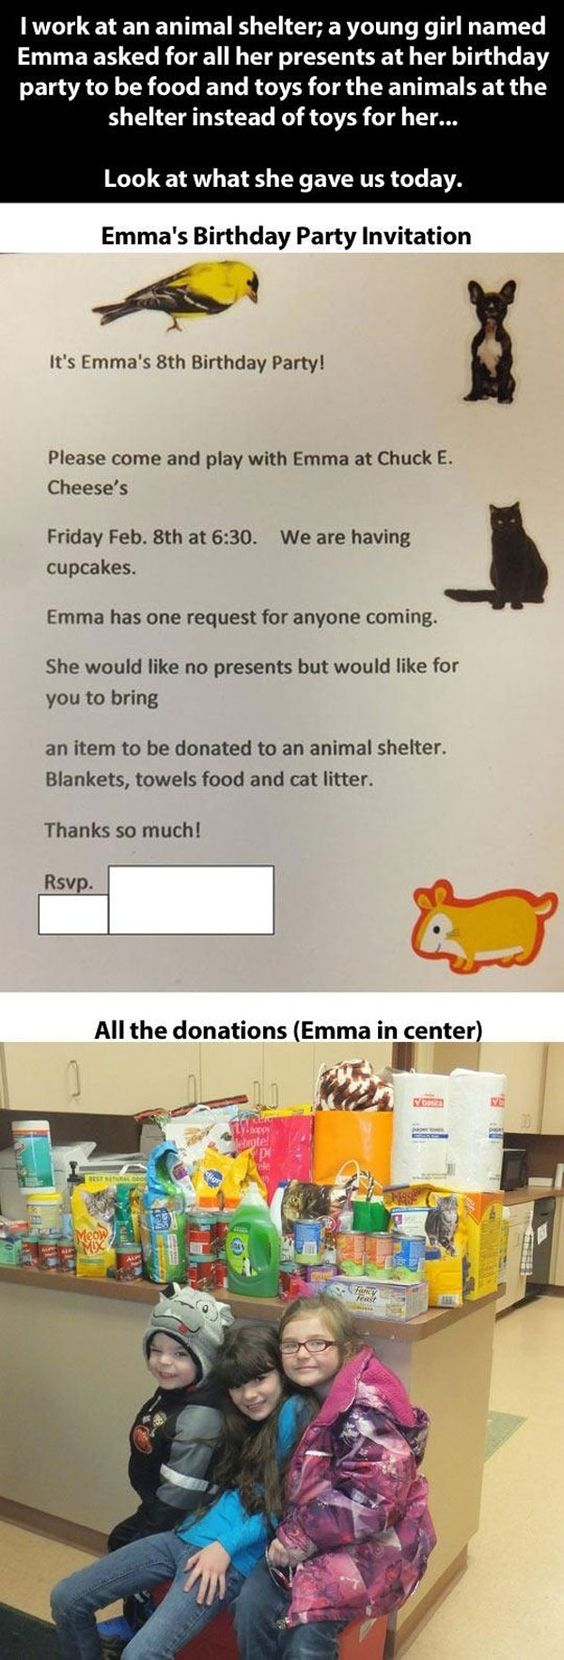 This birthday girl's love of animals is a testament to giving. - https://www.facebook.com/different.solutions.page